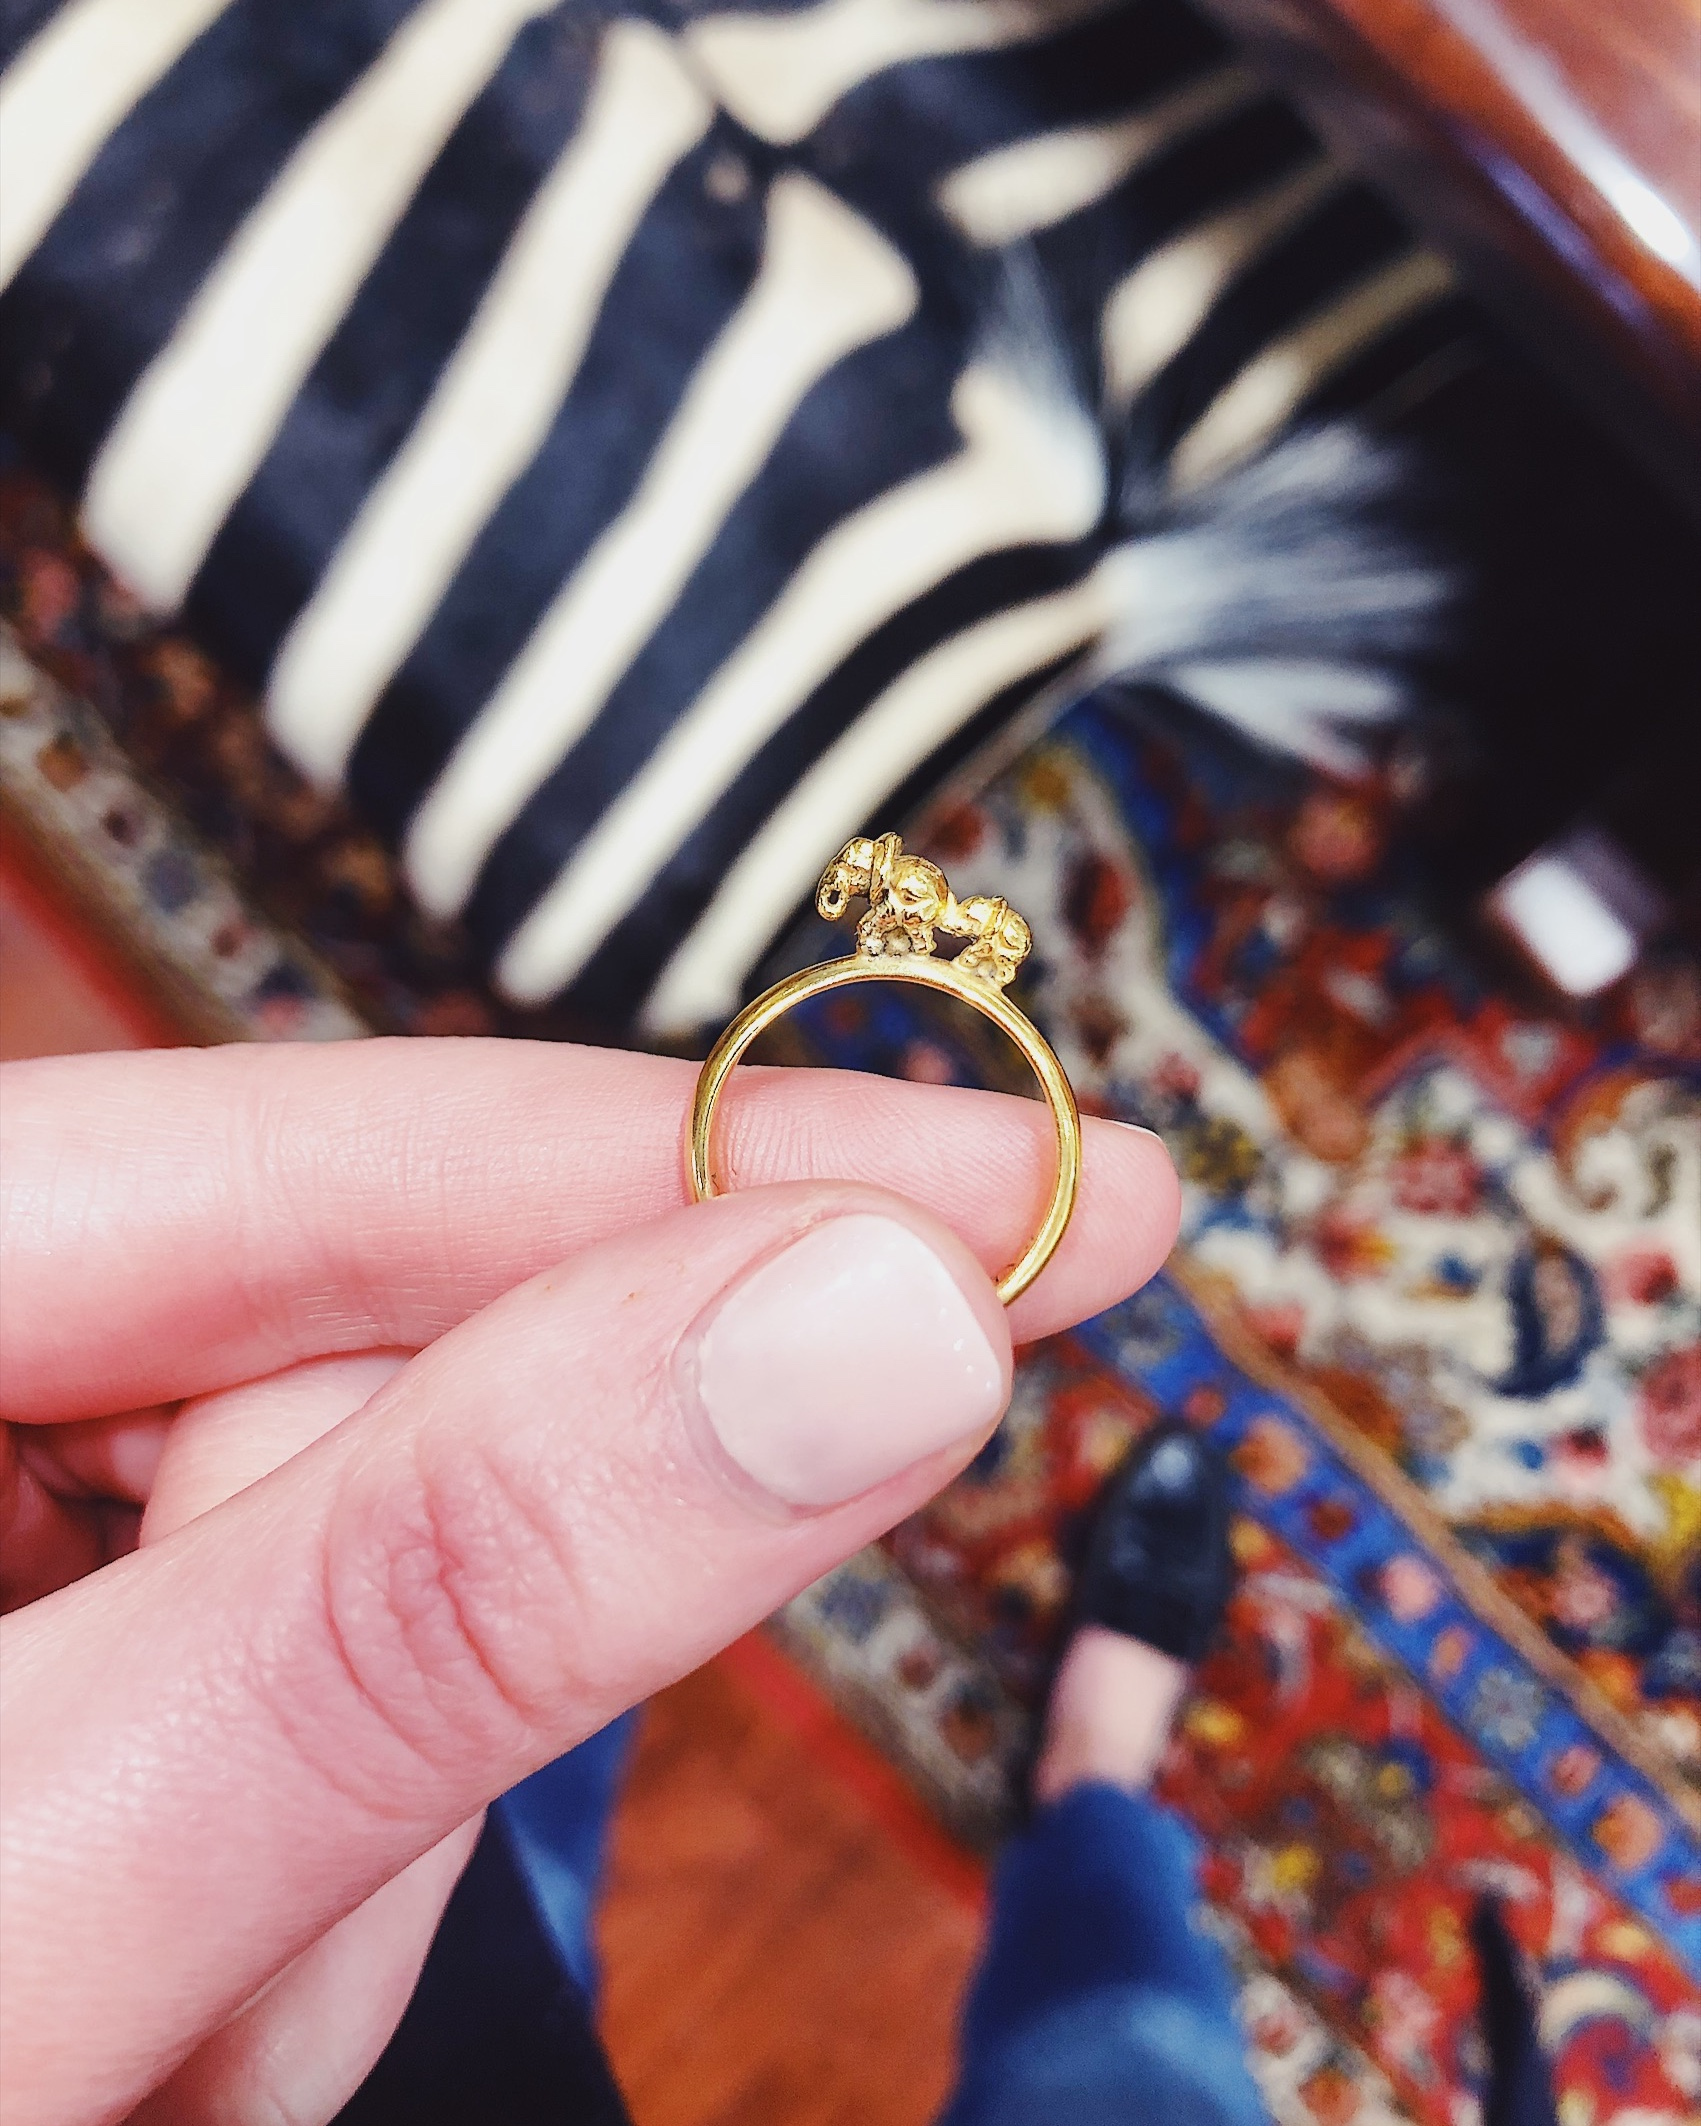 The 18ct gold Ma & Ba ring